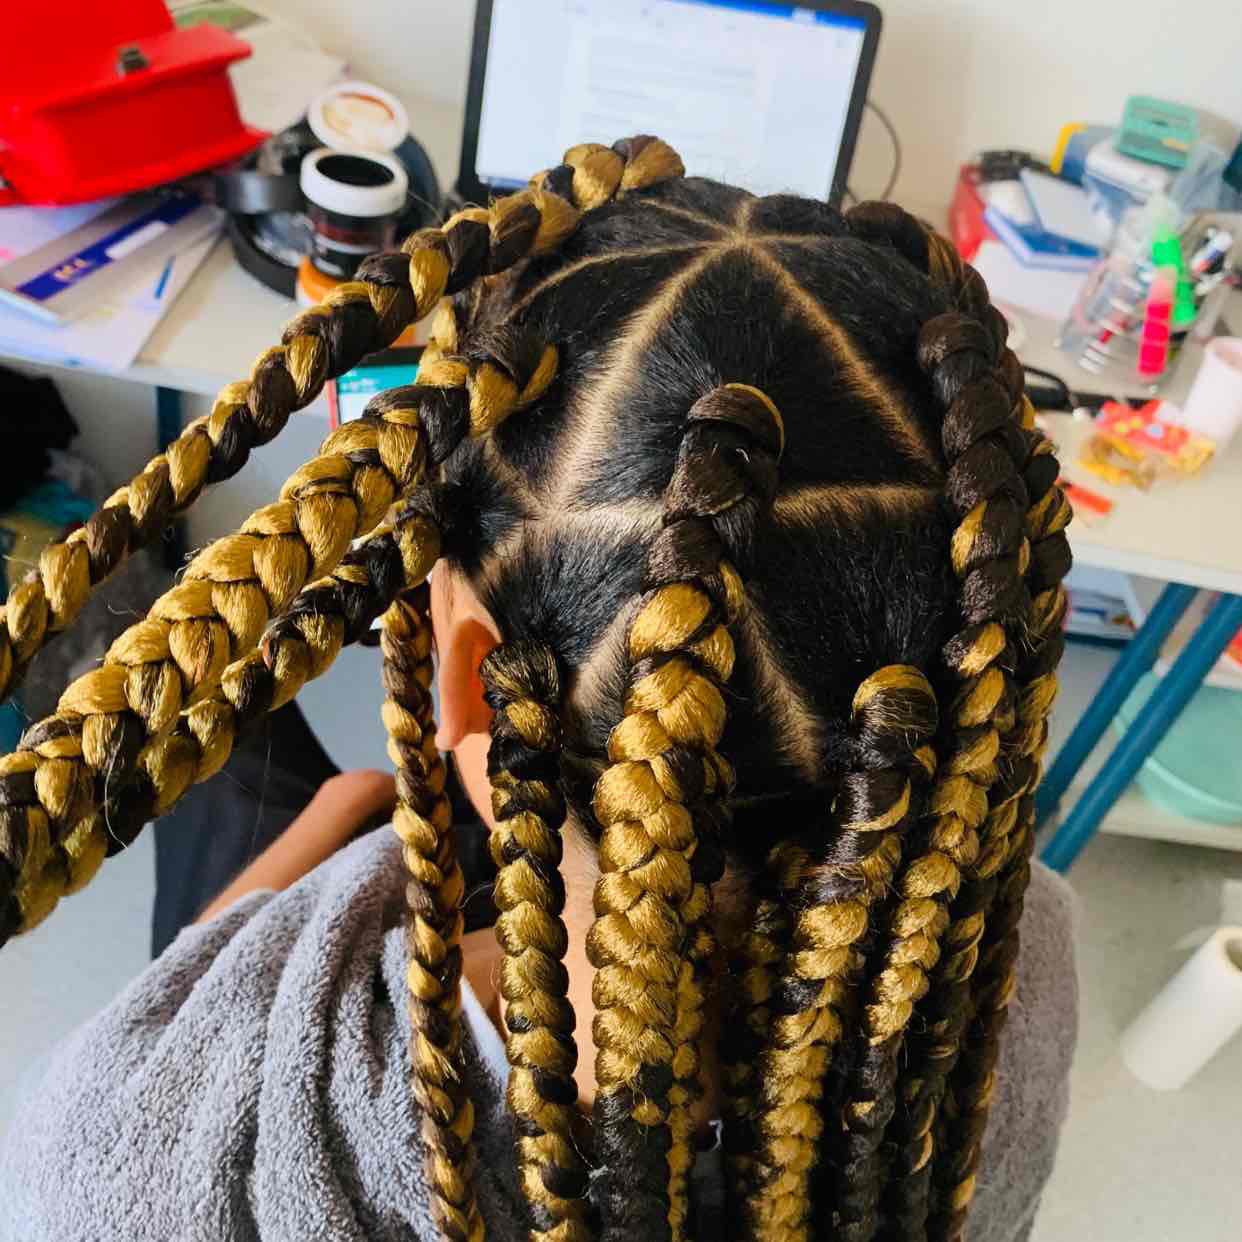 salon de coiffure afro tresse tresses box braids crochet braids vanilles tissages paris 75 77 78 91 92 93 94 95 GUDQDNSD